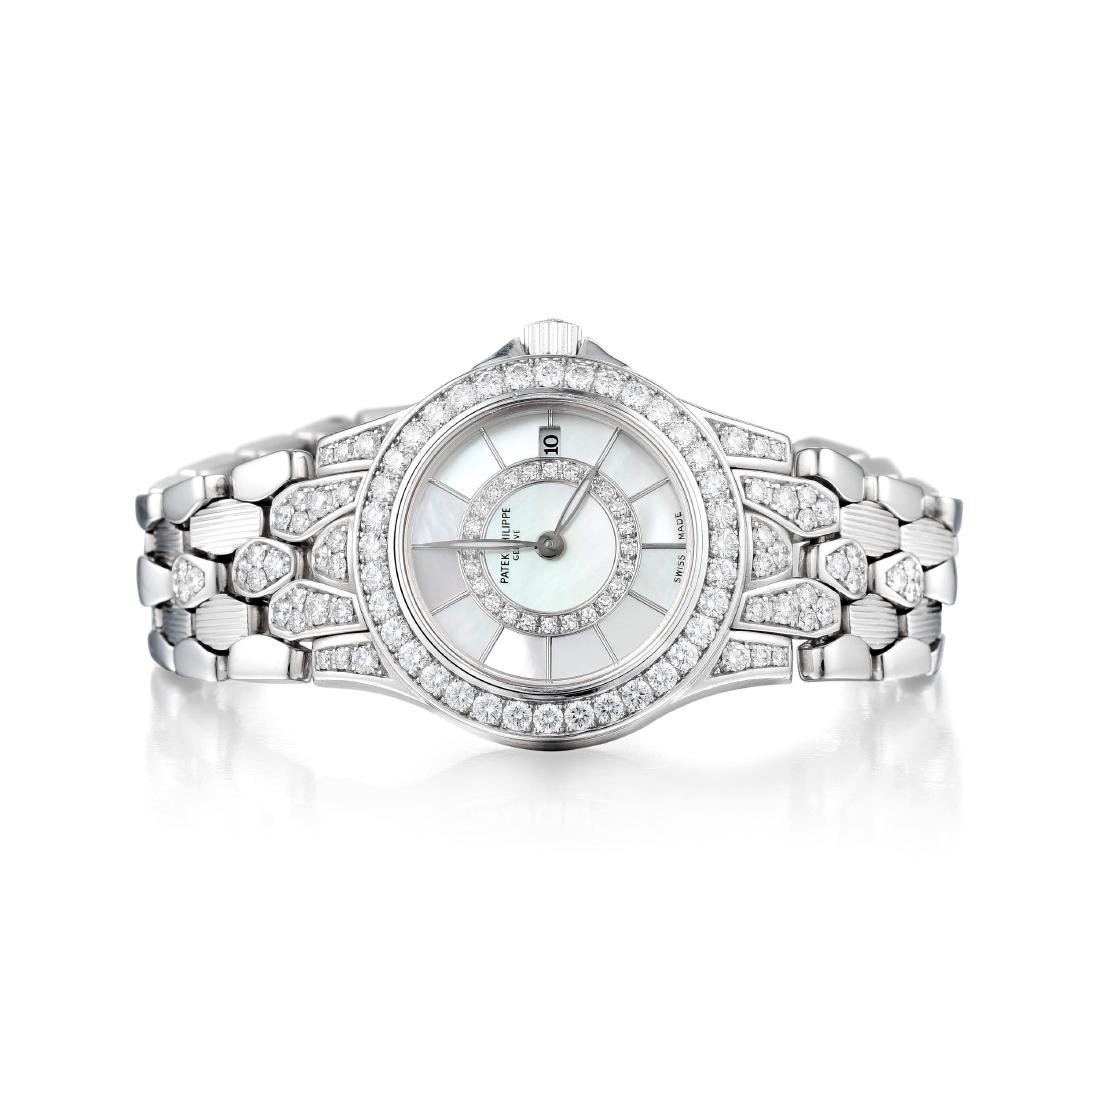 Patek Philippe Neptune White Gold and Diamond Ladies